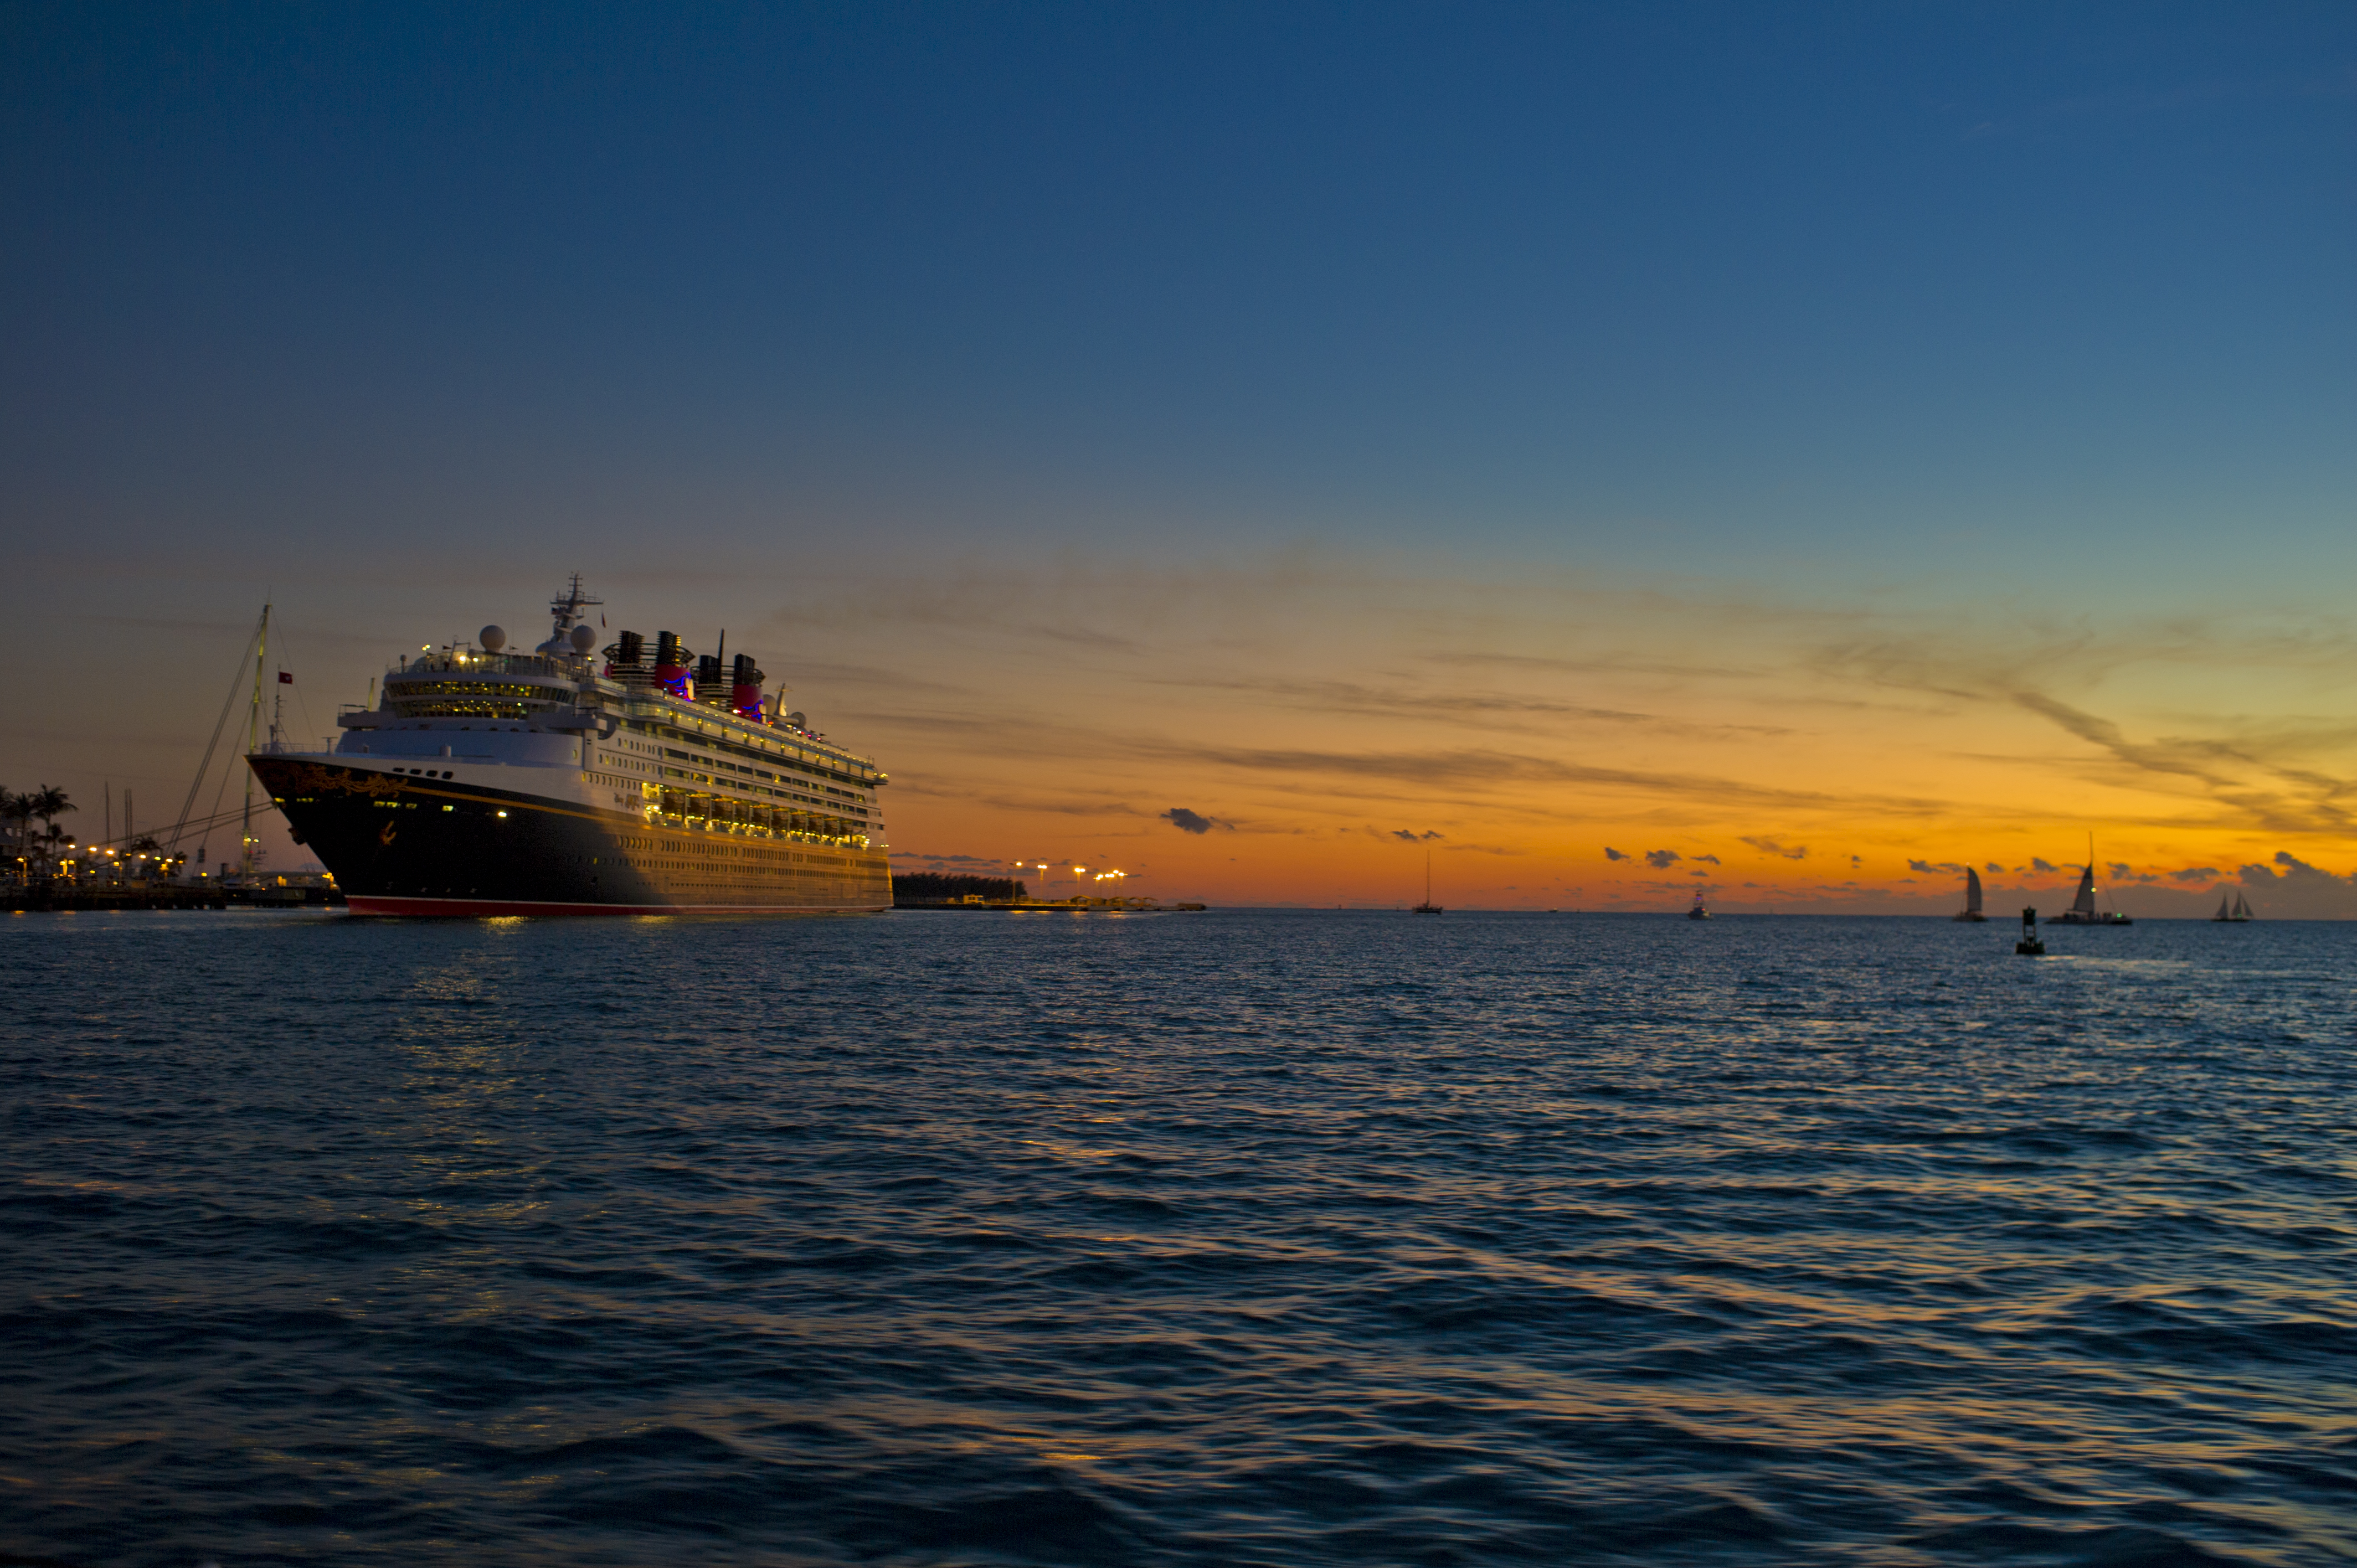 A Key West Guide For Cruise Ship Passengers The Key Wester A - Cruise ship key west